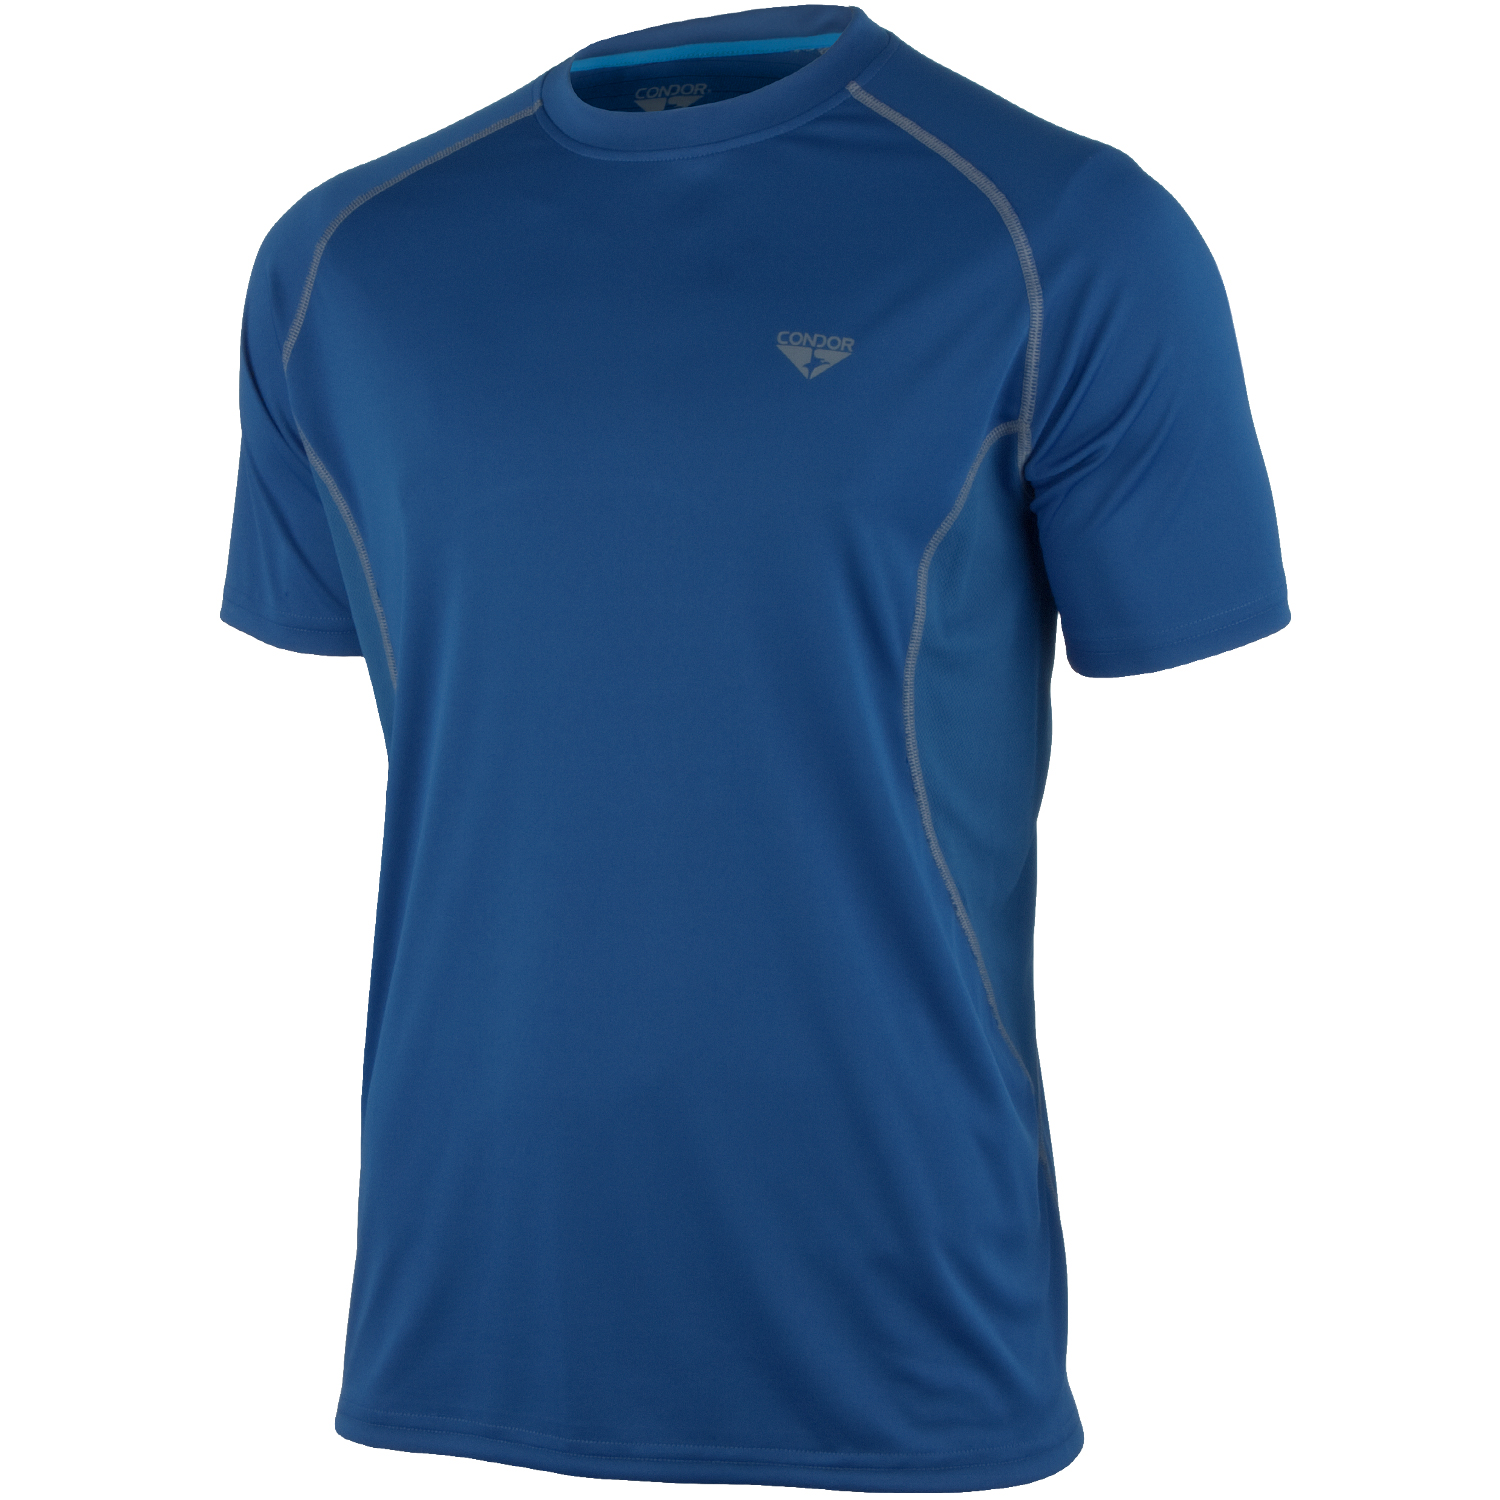 Condor blitz performance t shirt cobalt t shirts vests for What is a performance t shirt